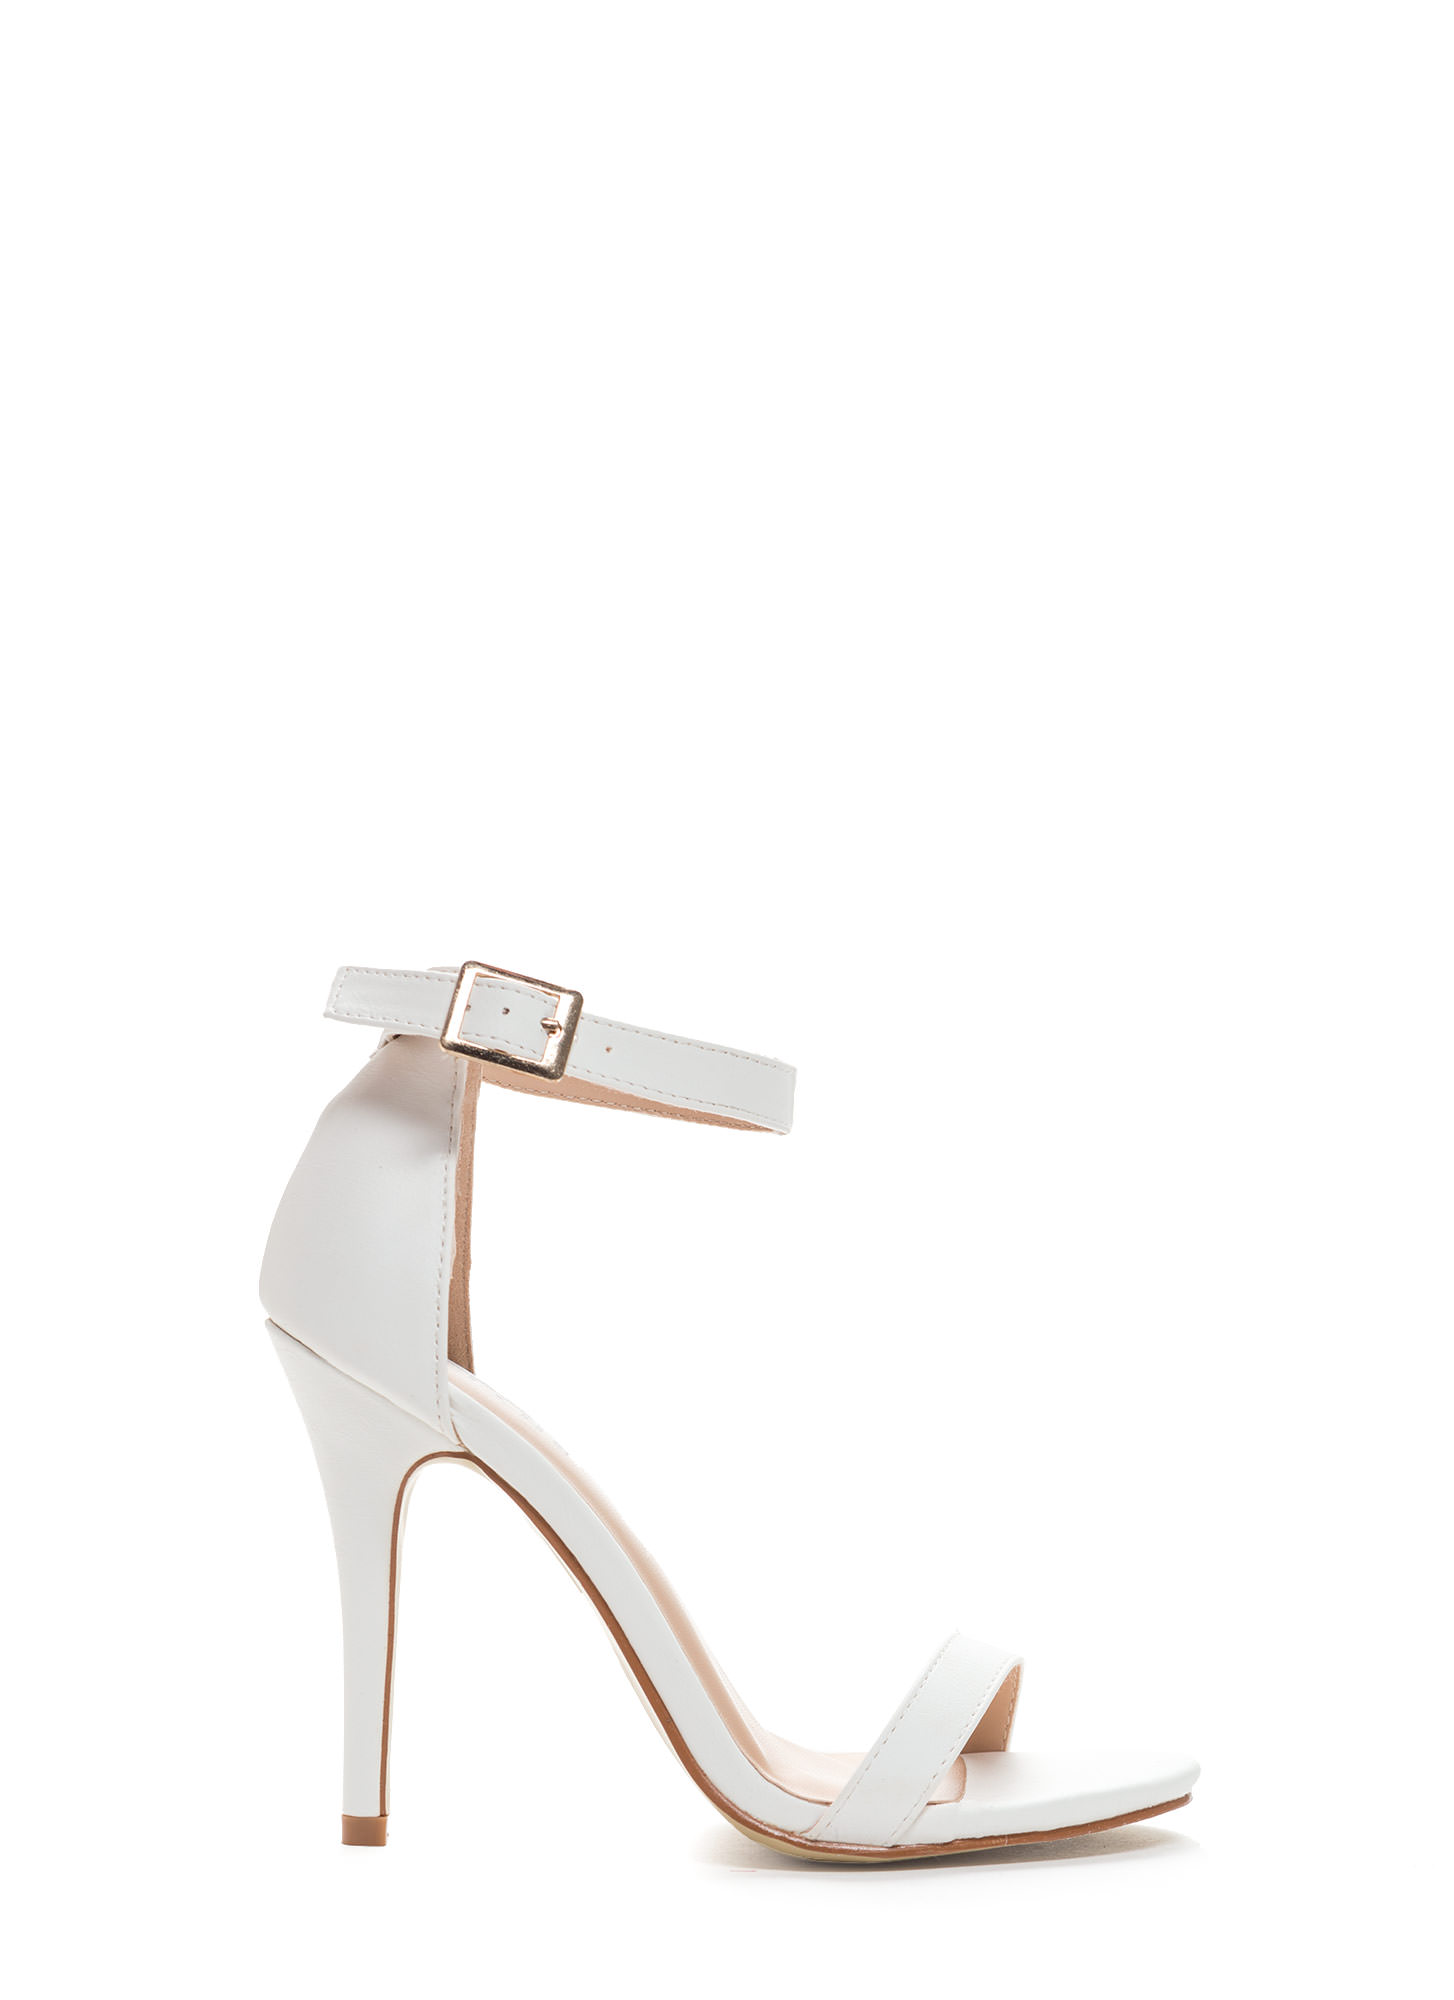 Less Is More Single-Strap Heels WHITE